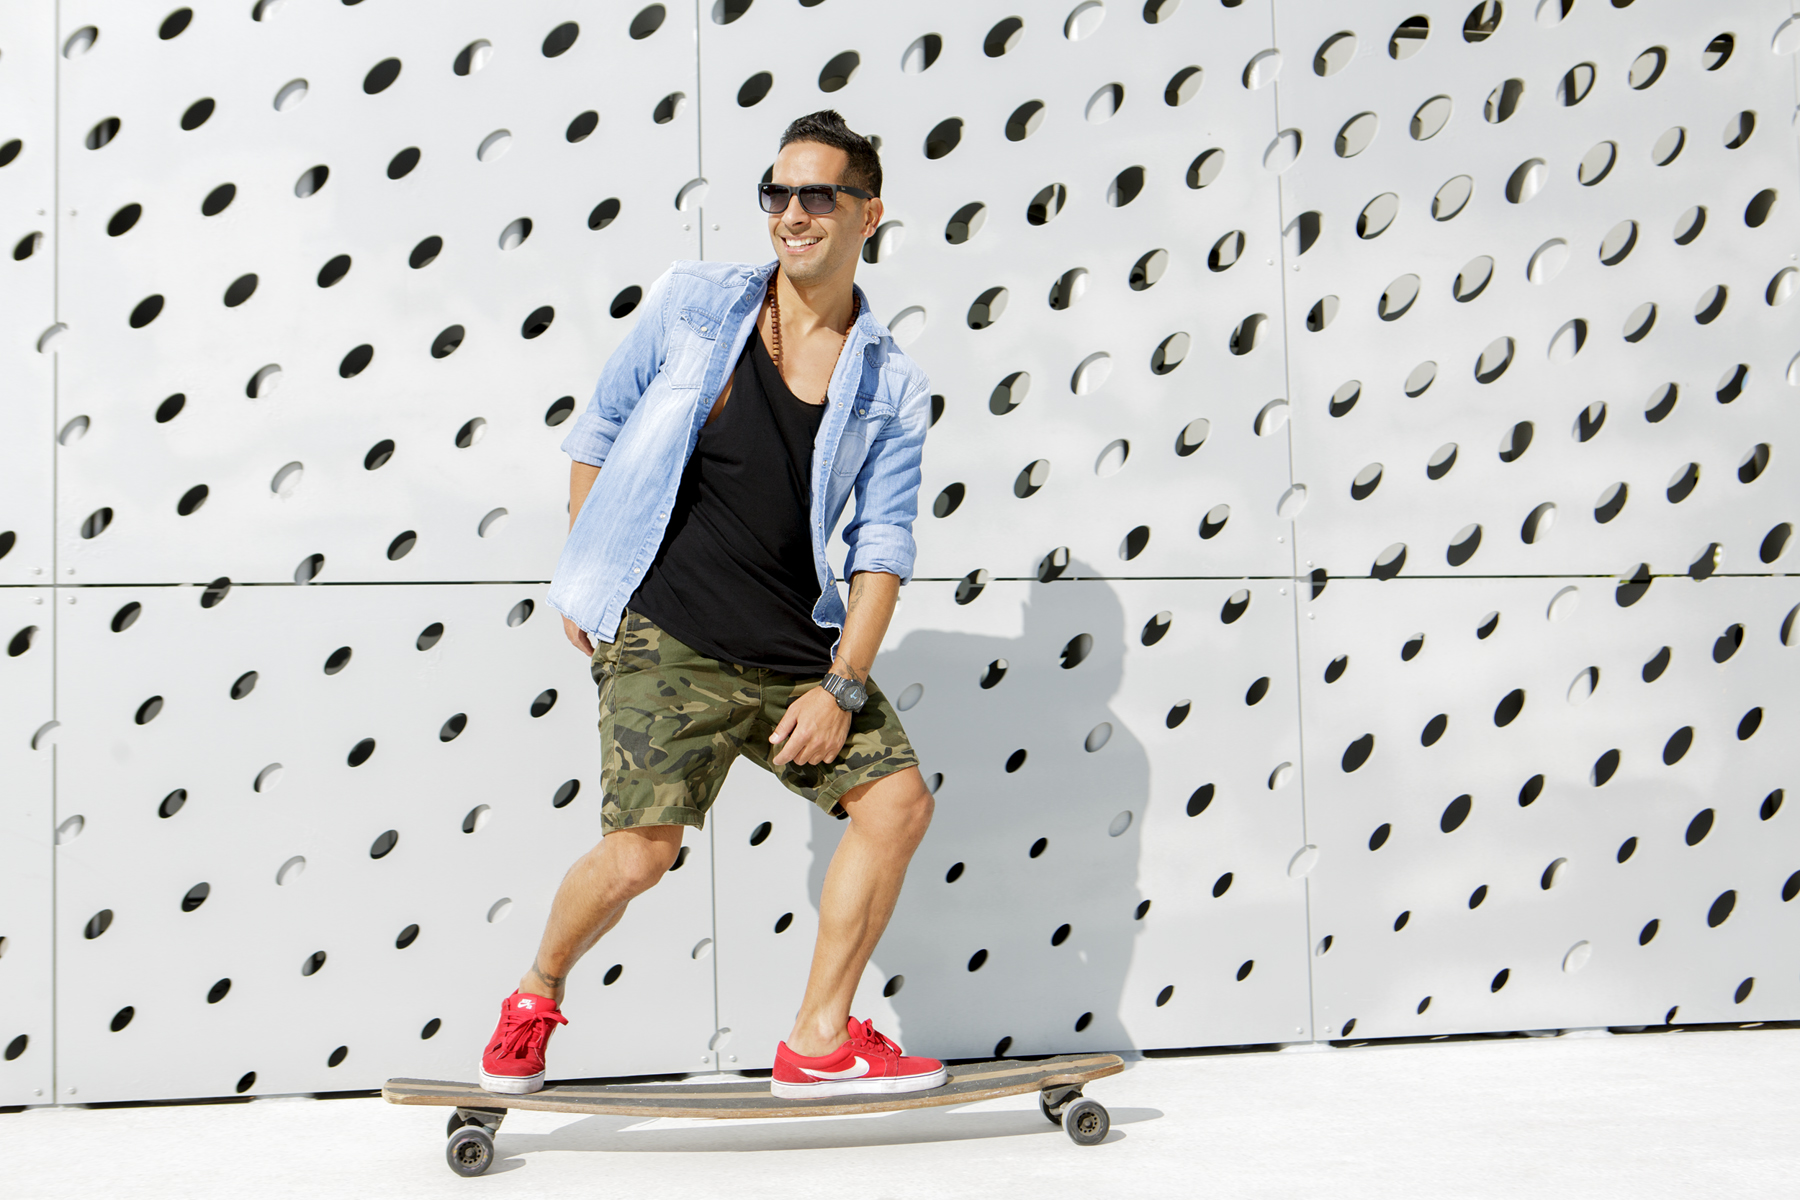 lifestyle_photography_miami_beach_new_york_david_gonzalez_healthcare_photographer_lifestyle_portrait_skateboarding_fun_advertising_1800.jpg